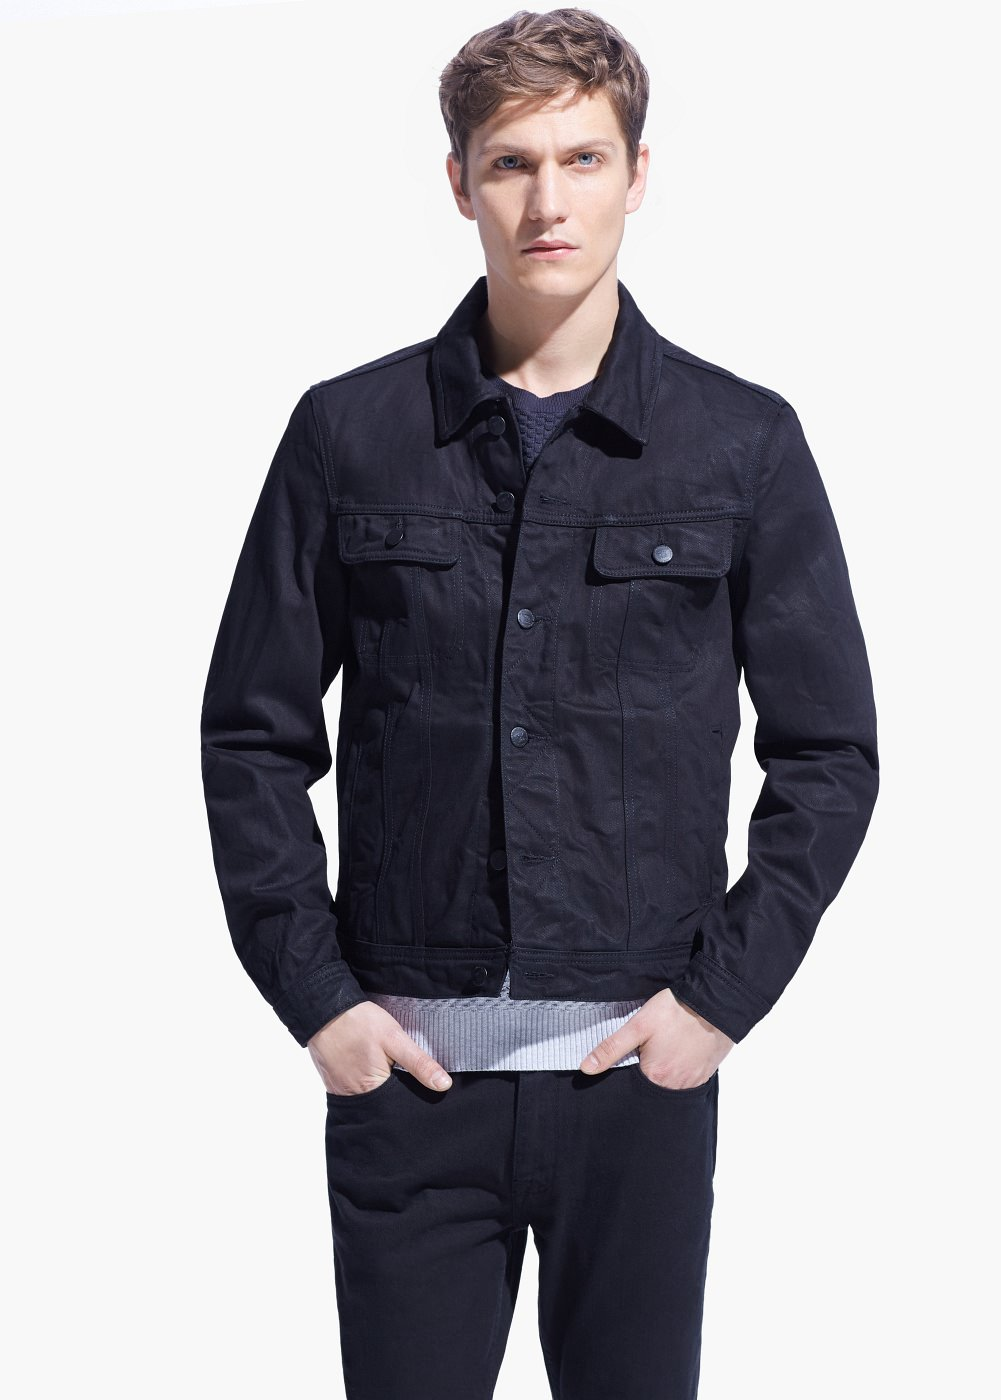 Mens Dark Denim Jacket | Outdoor Jacket